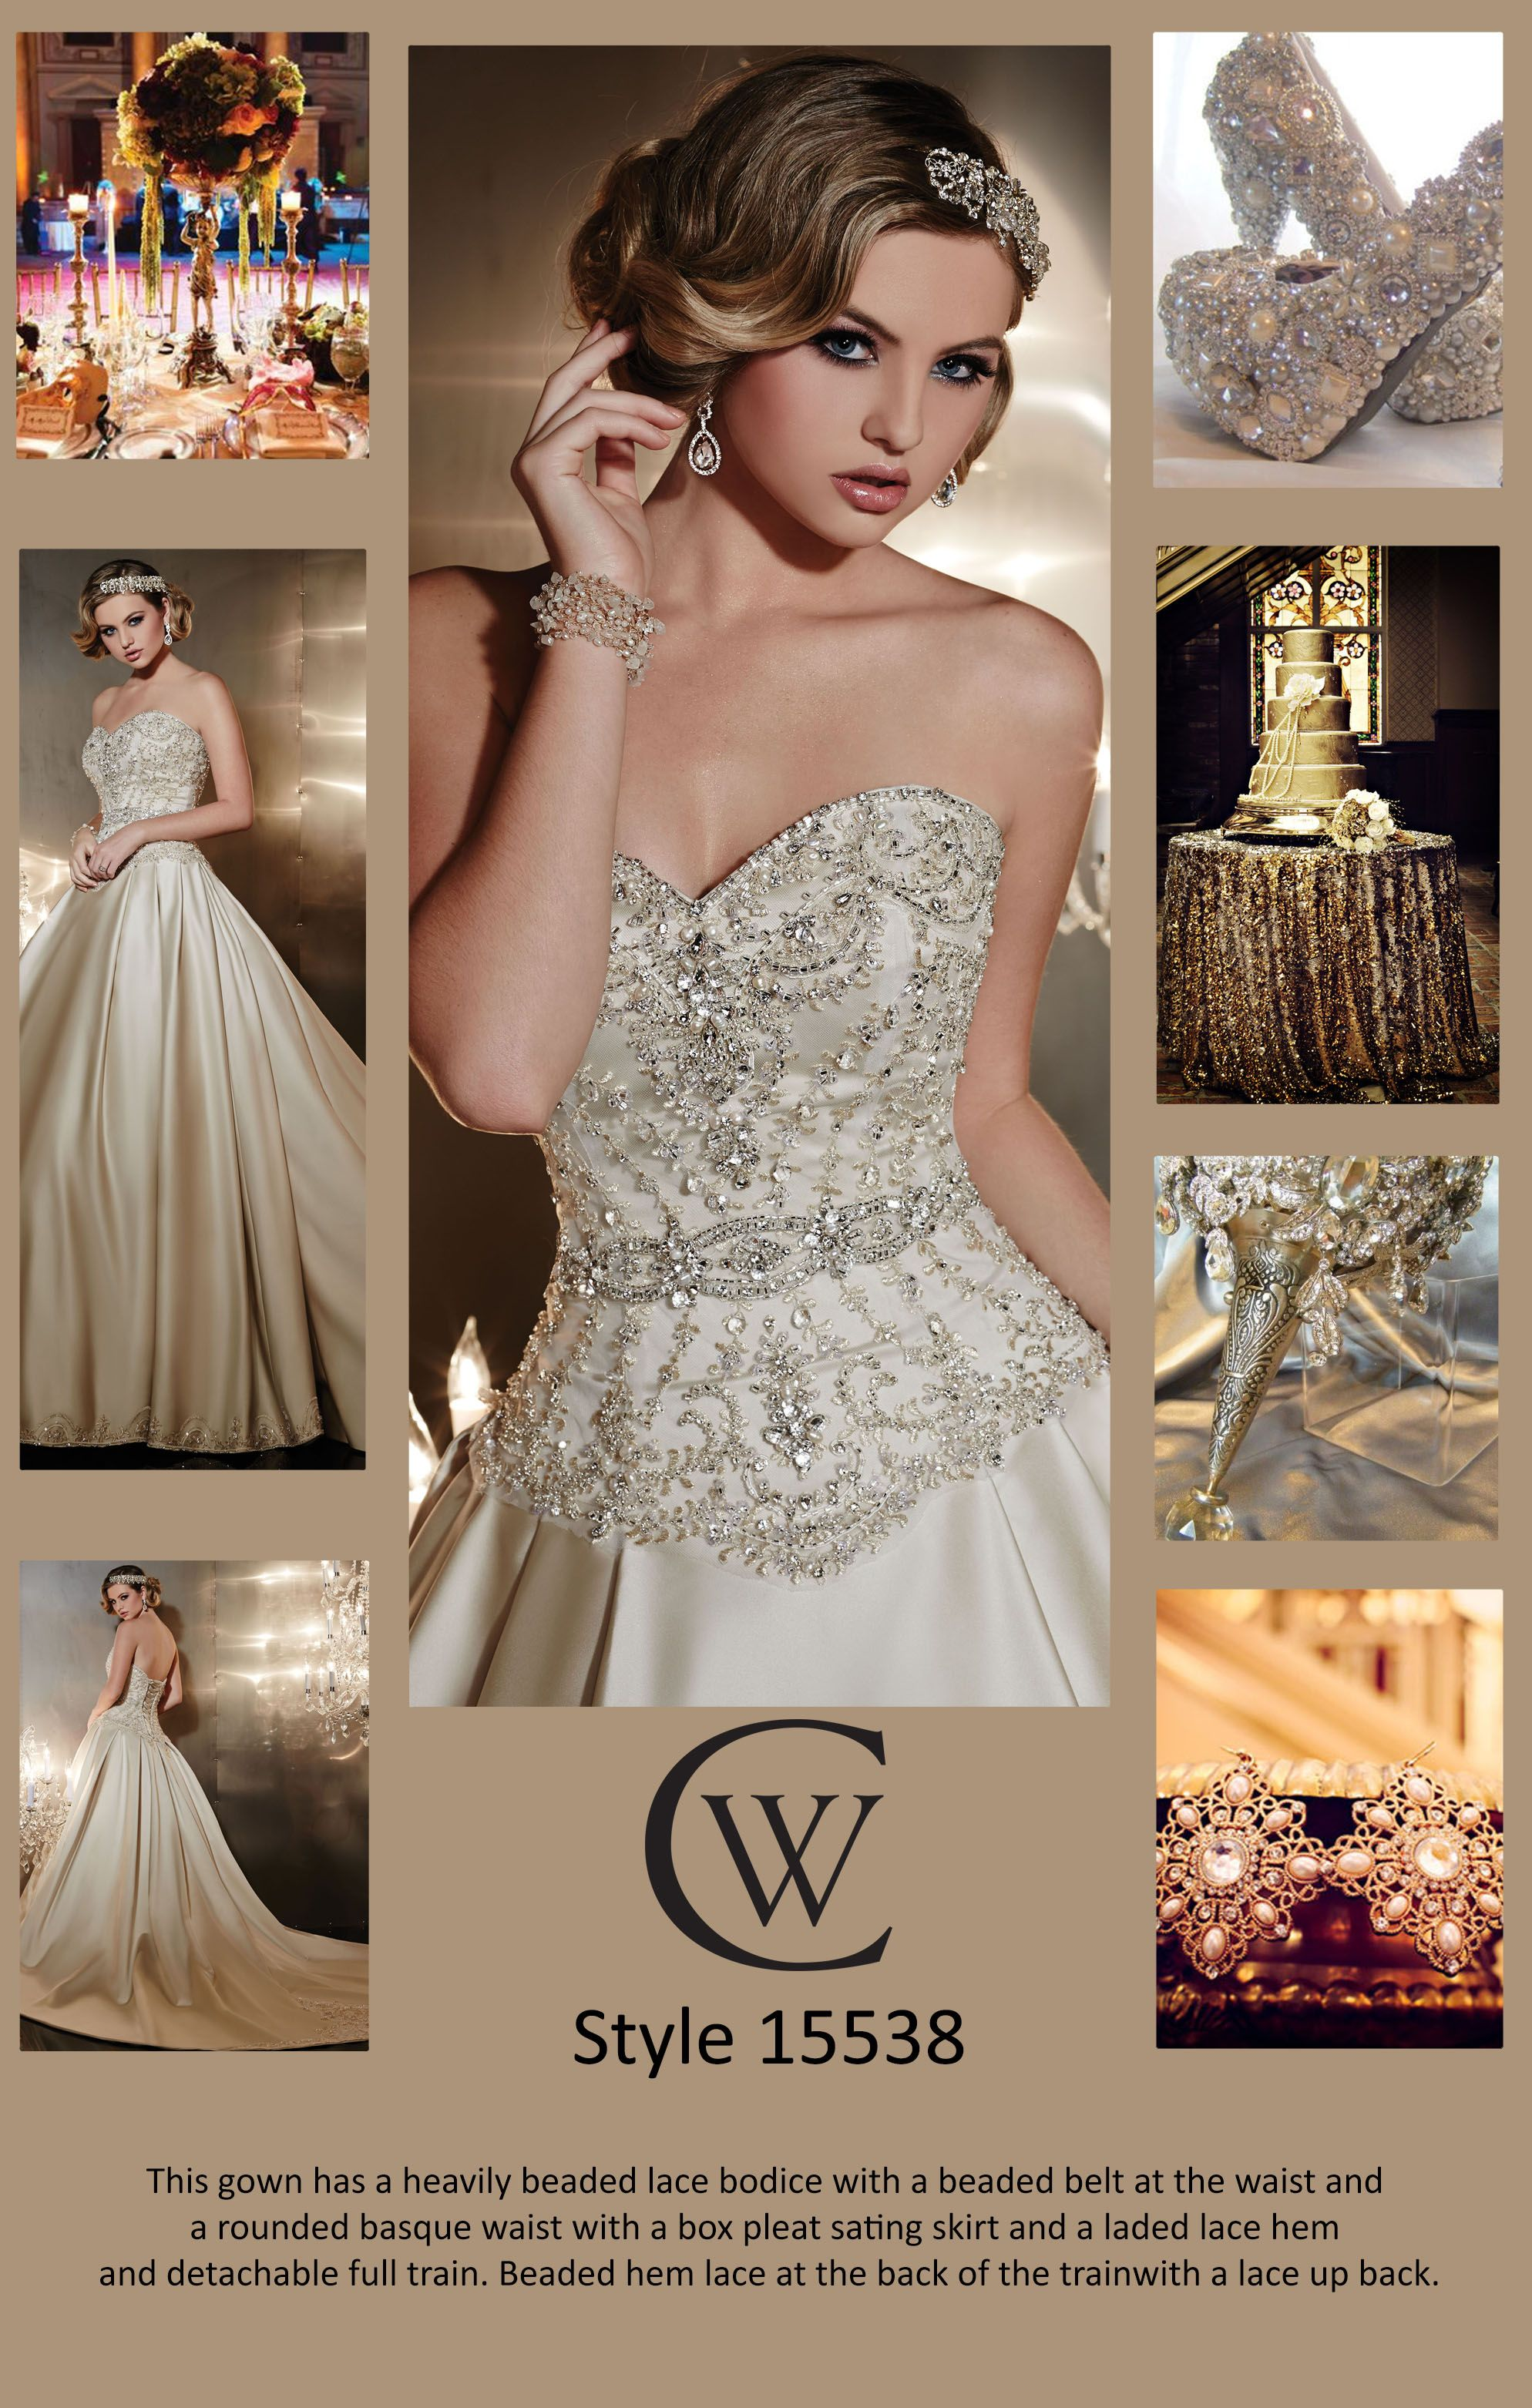 Style is an elegant choice for a traditional bride or brideto